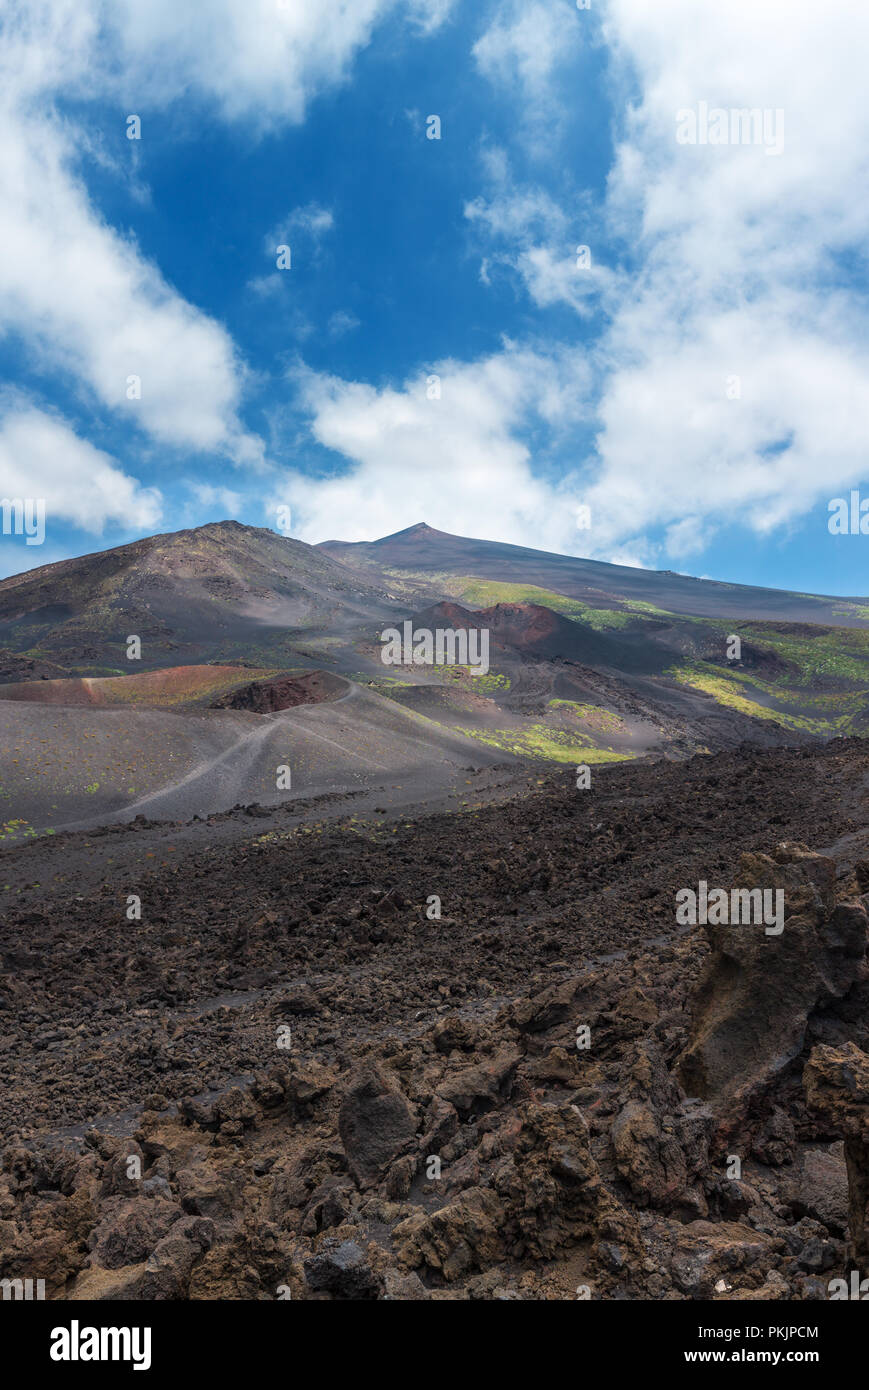 Stony magma fields between summer Etna volcano mountain craters, Sicily, Italy. People unrecognizable. - Stock Image